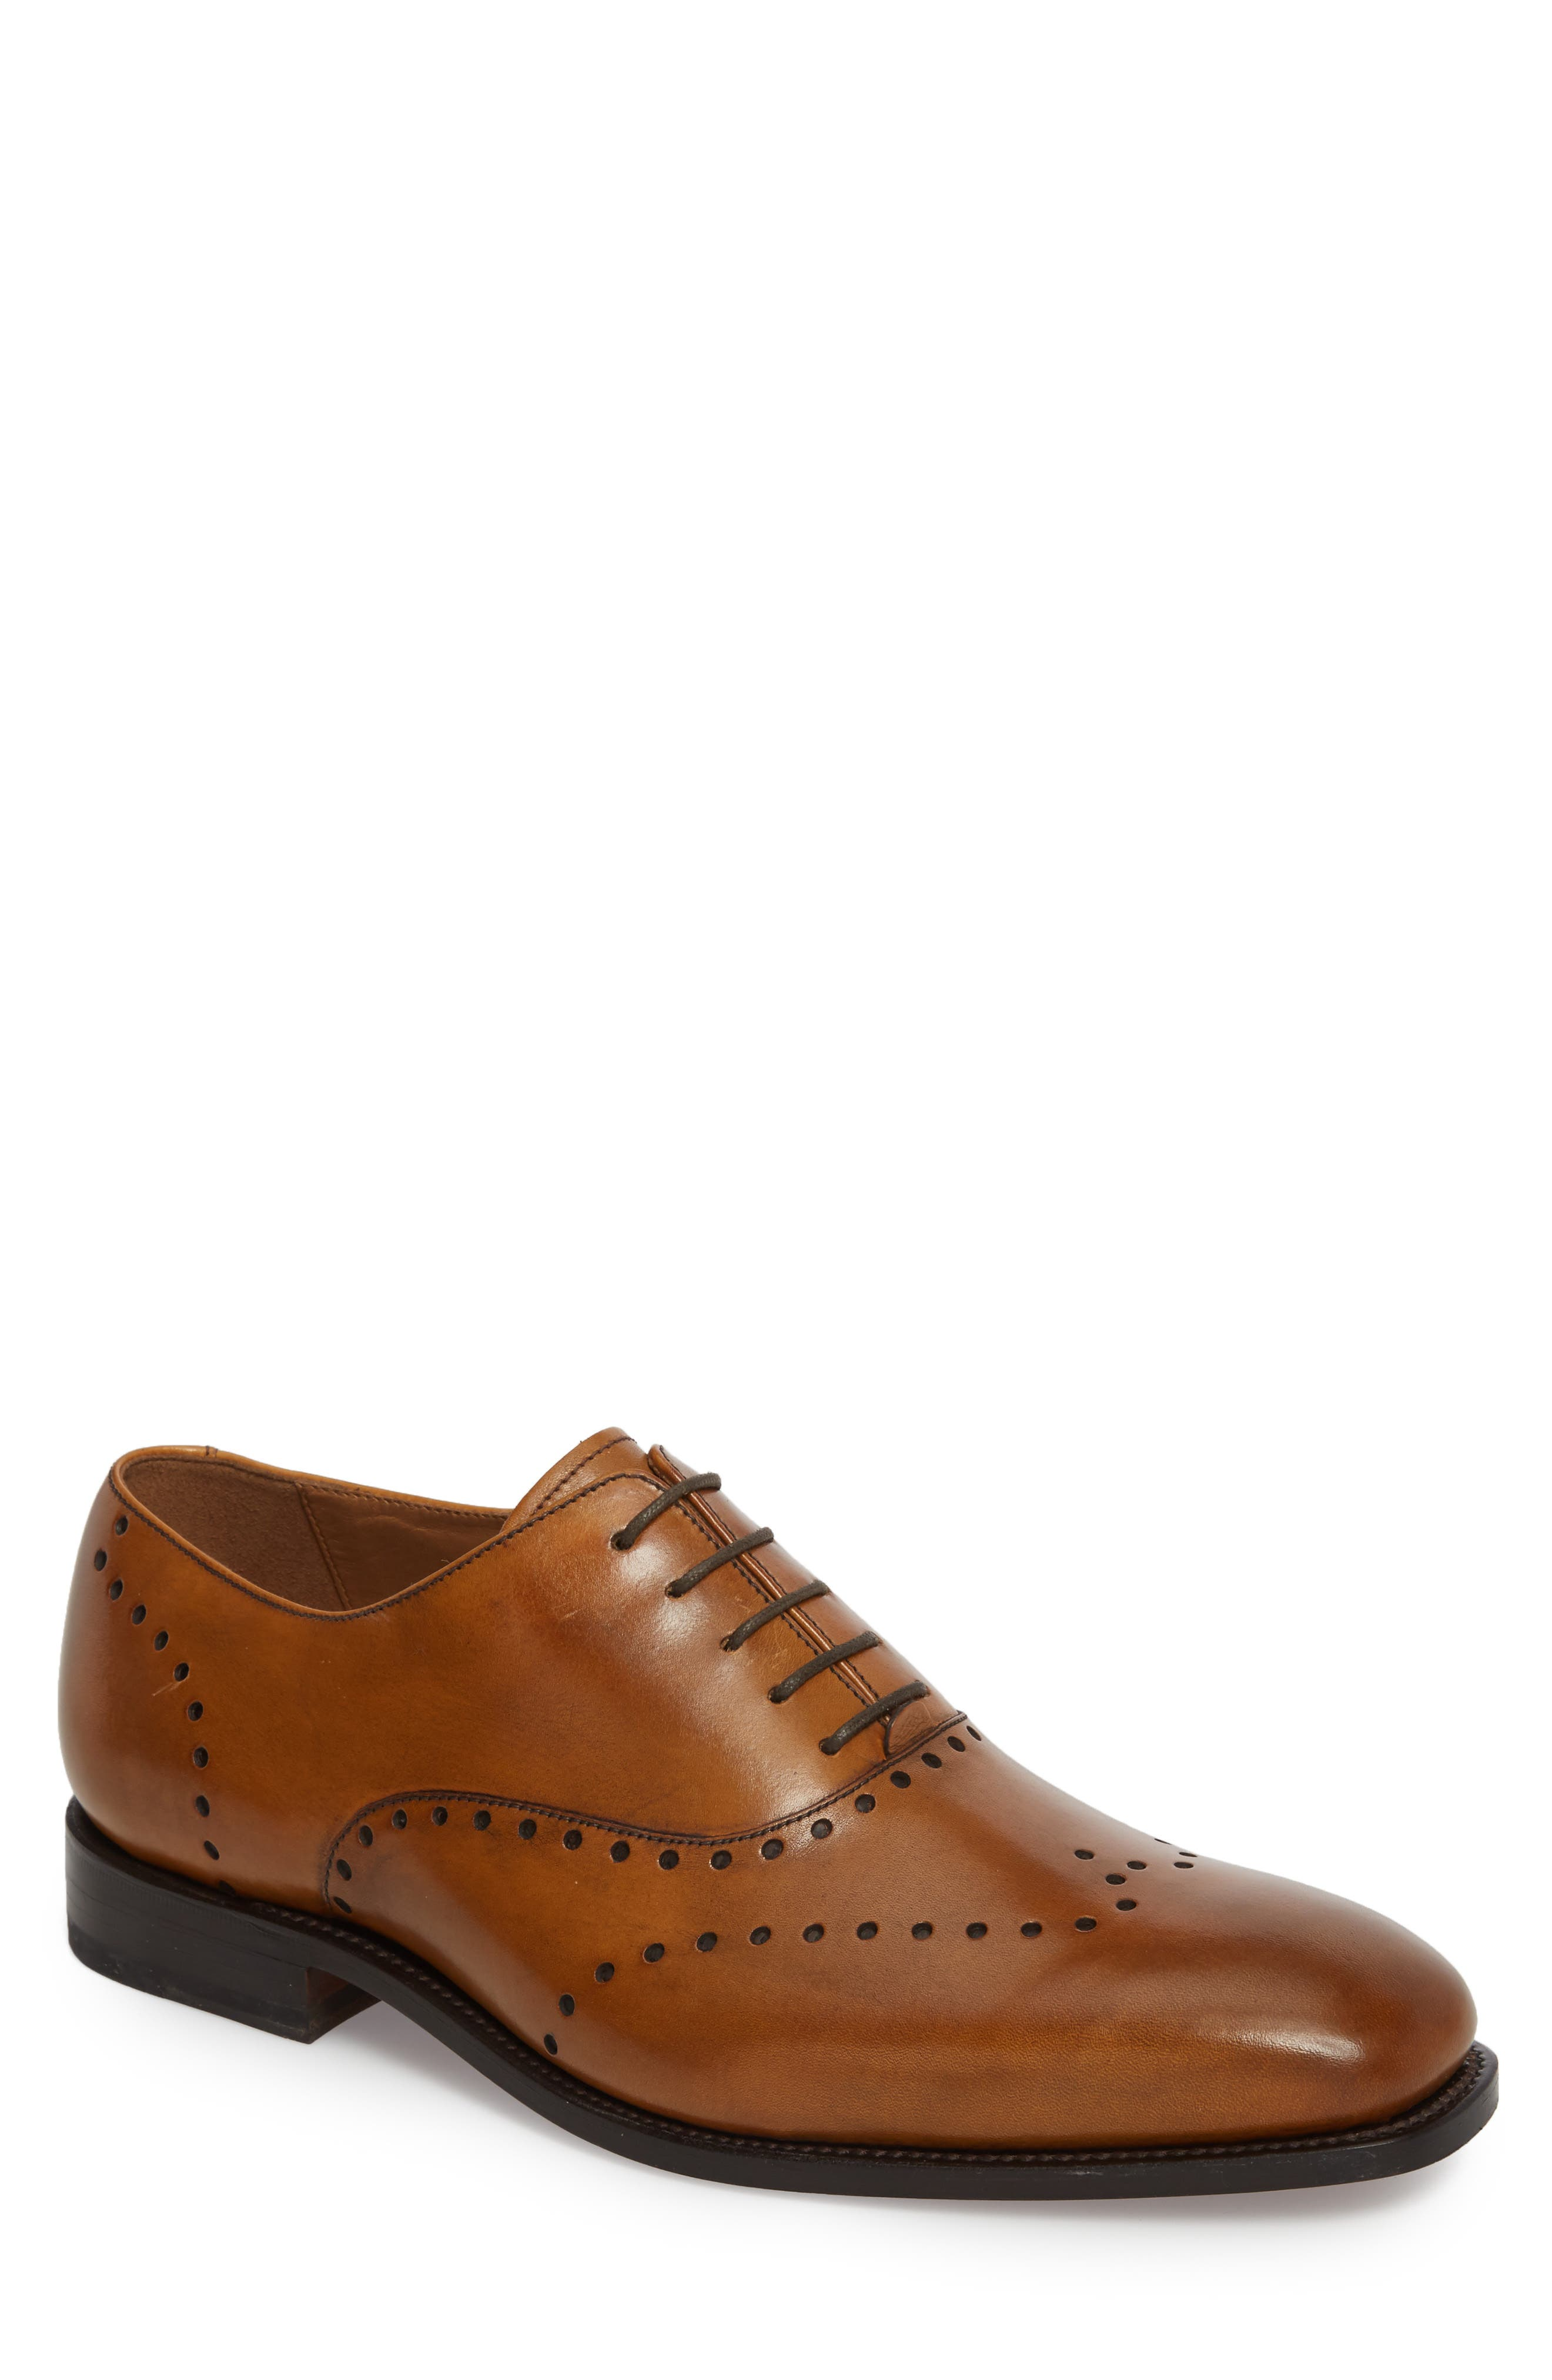 Belvedere Wingtip,                         Main,                         color, OAK